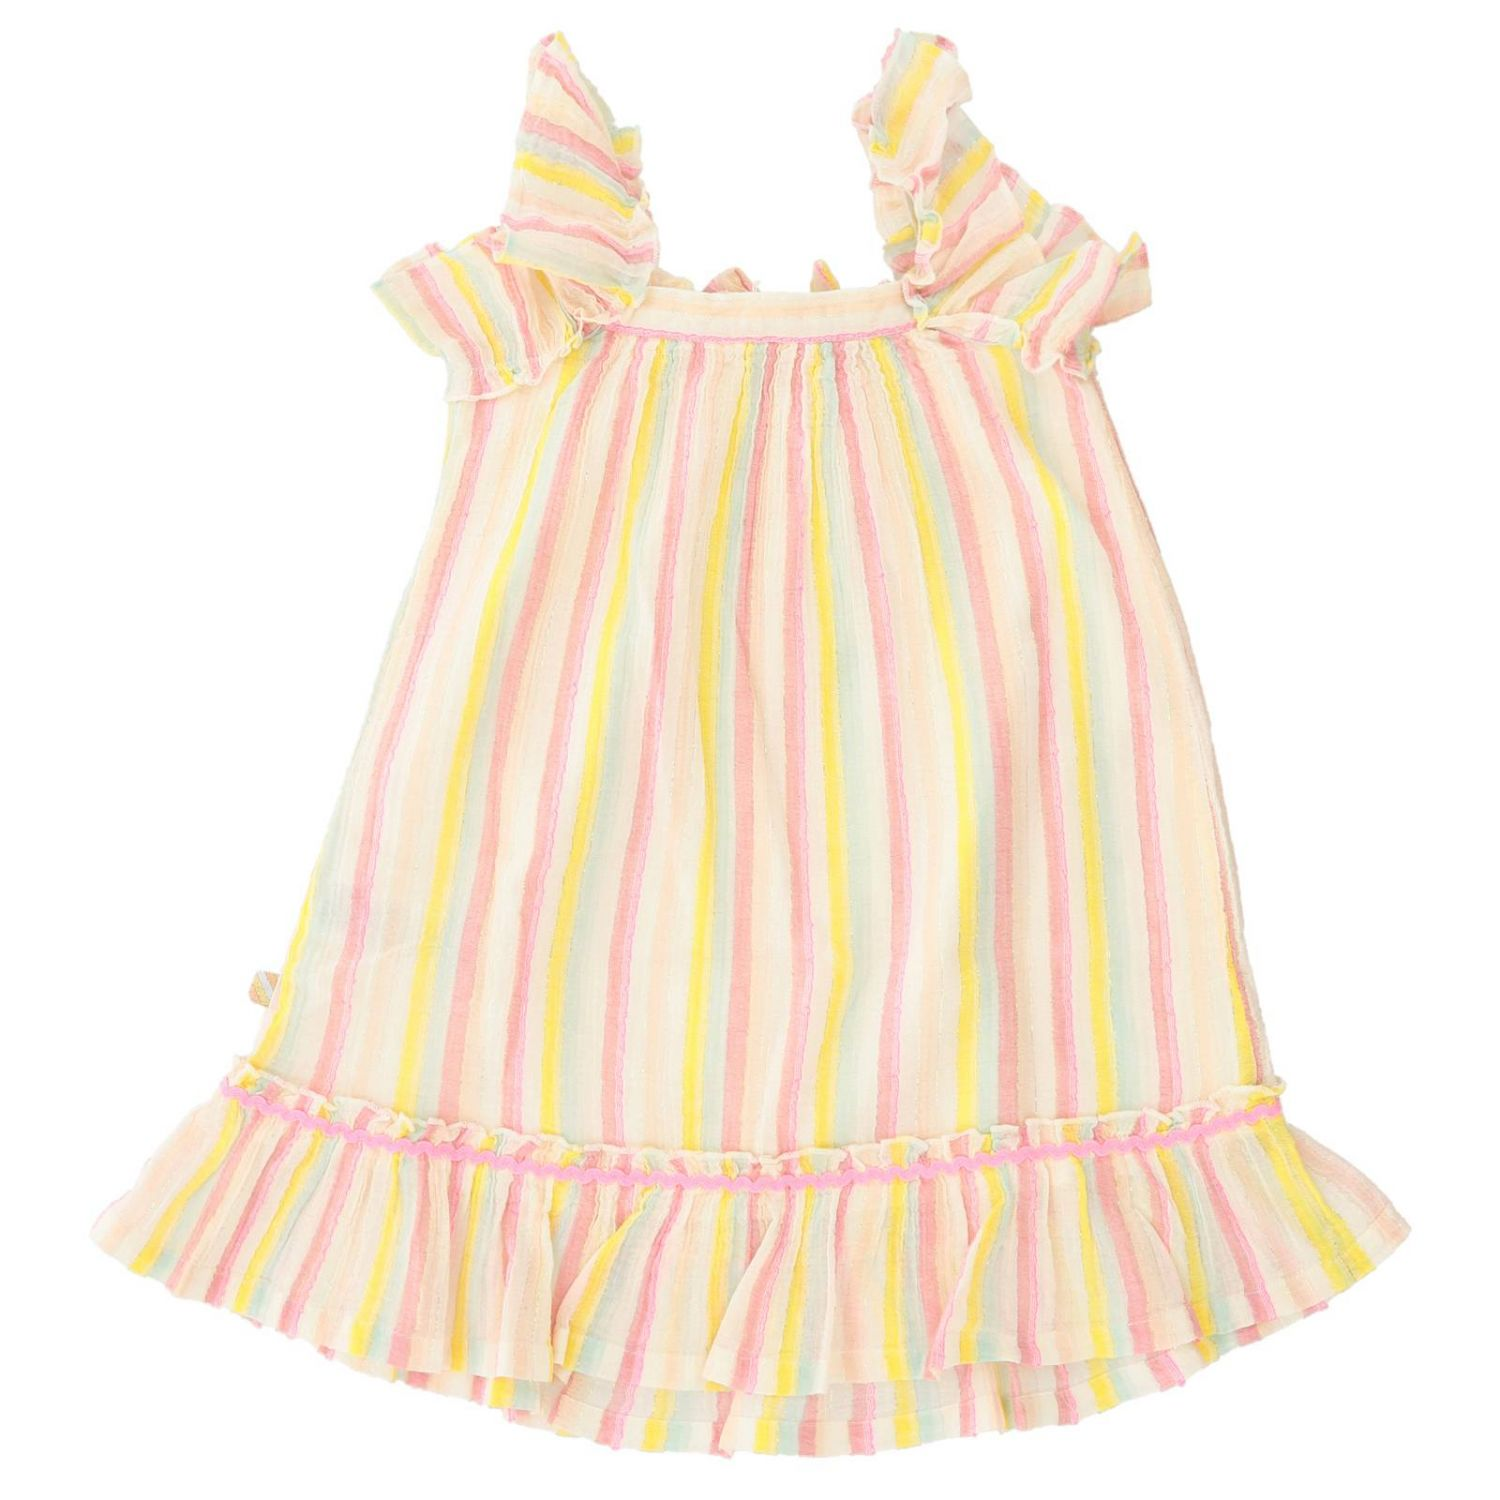 Robe enfant Billieblush multicolore 2